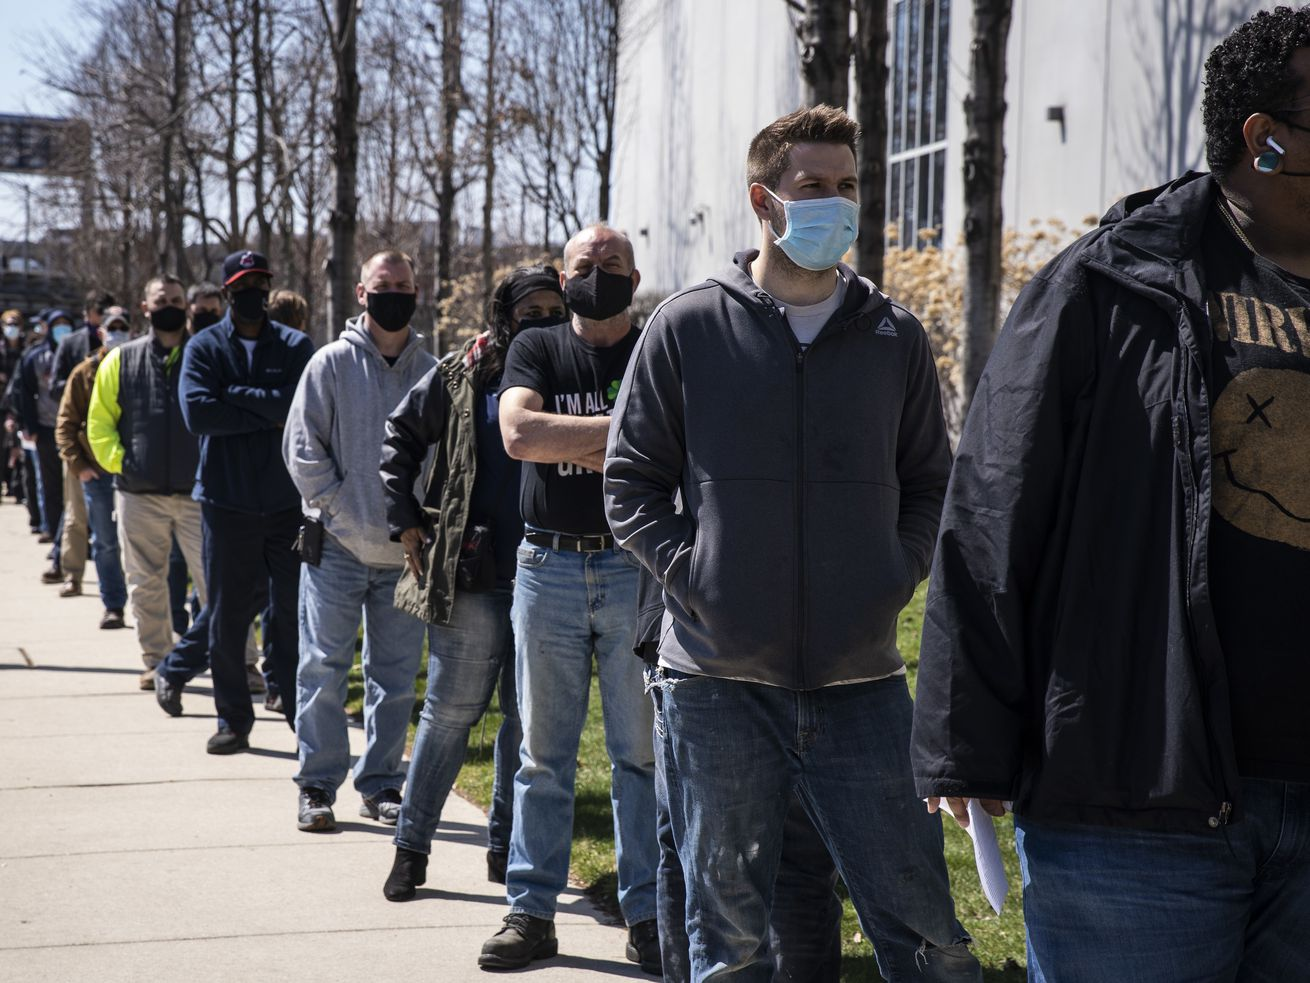 Union members line up last week for COVID-19 vaccinations at International Union of Operating Engineers Local 399 on the South Side. About 19% of Illinois residents have been fully vaccinated, but the state is facing a third surge of the virus.